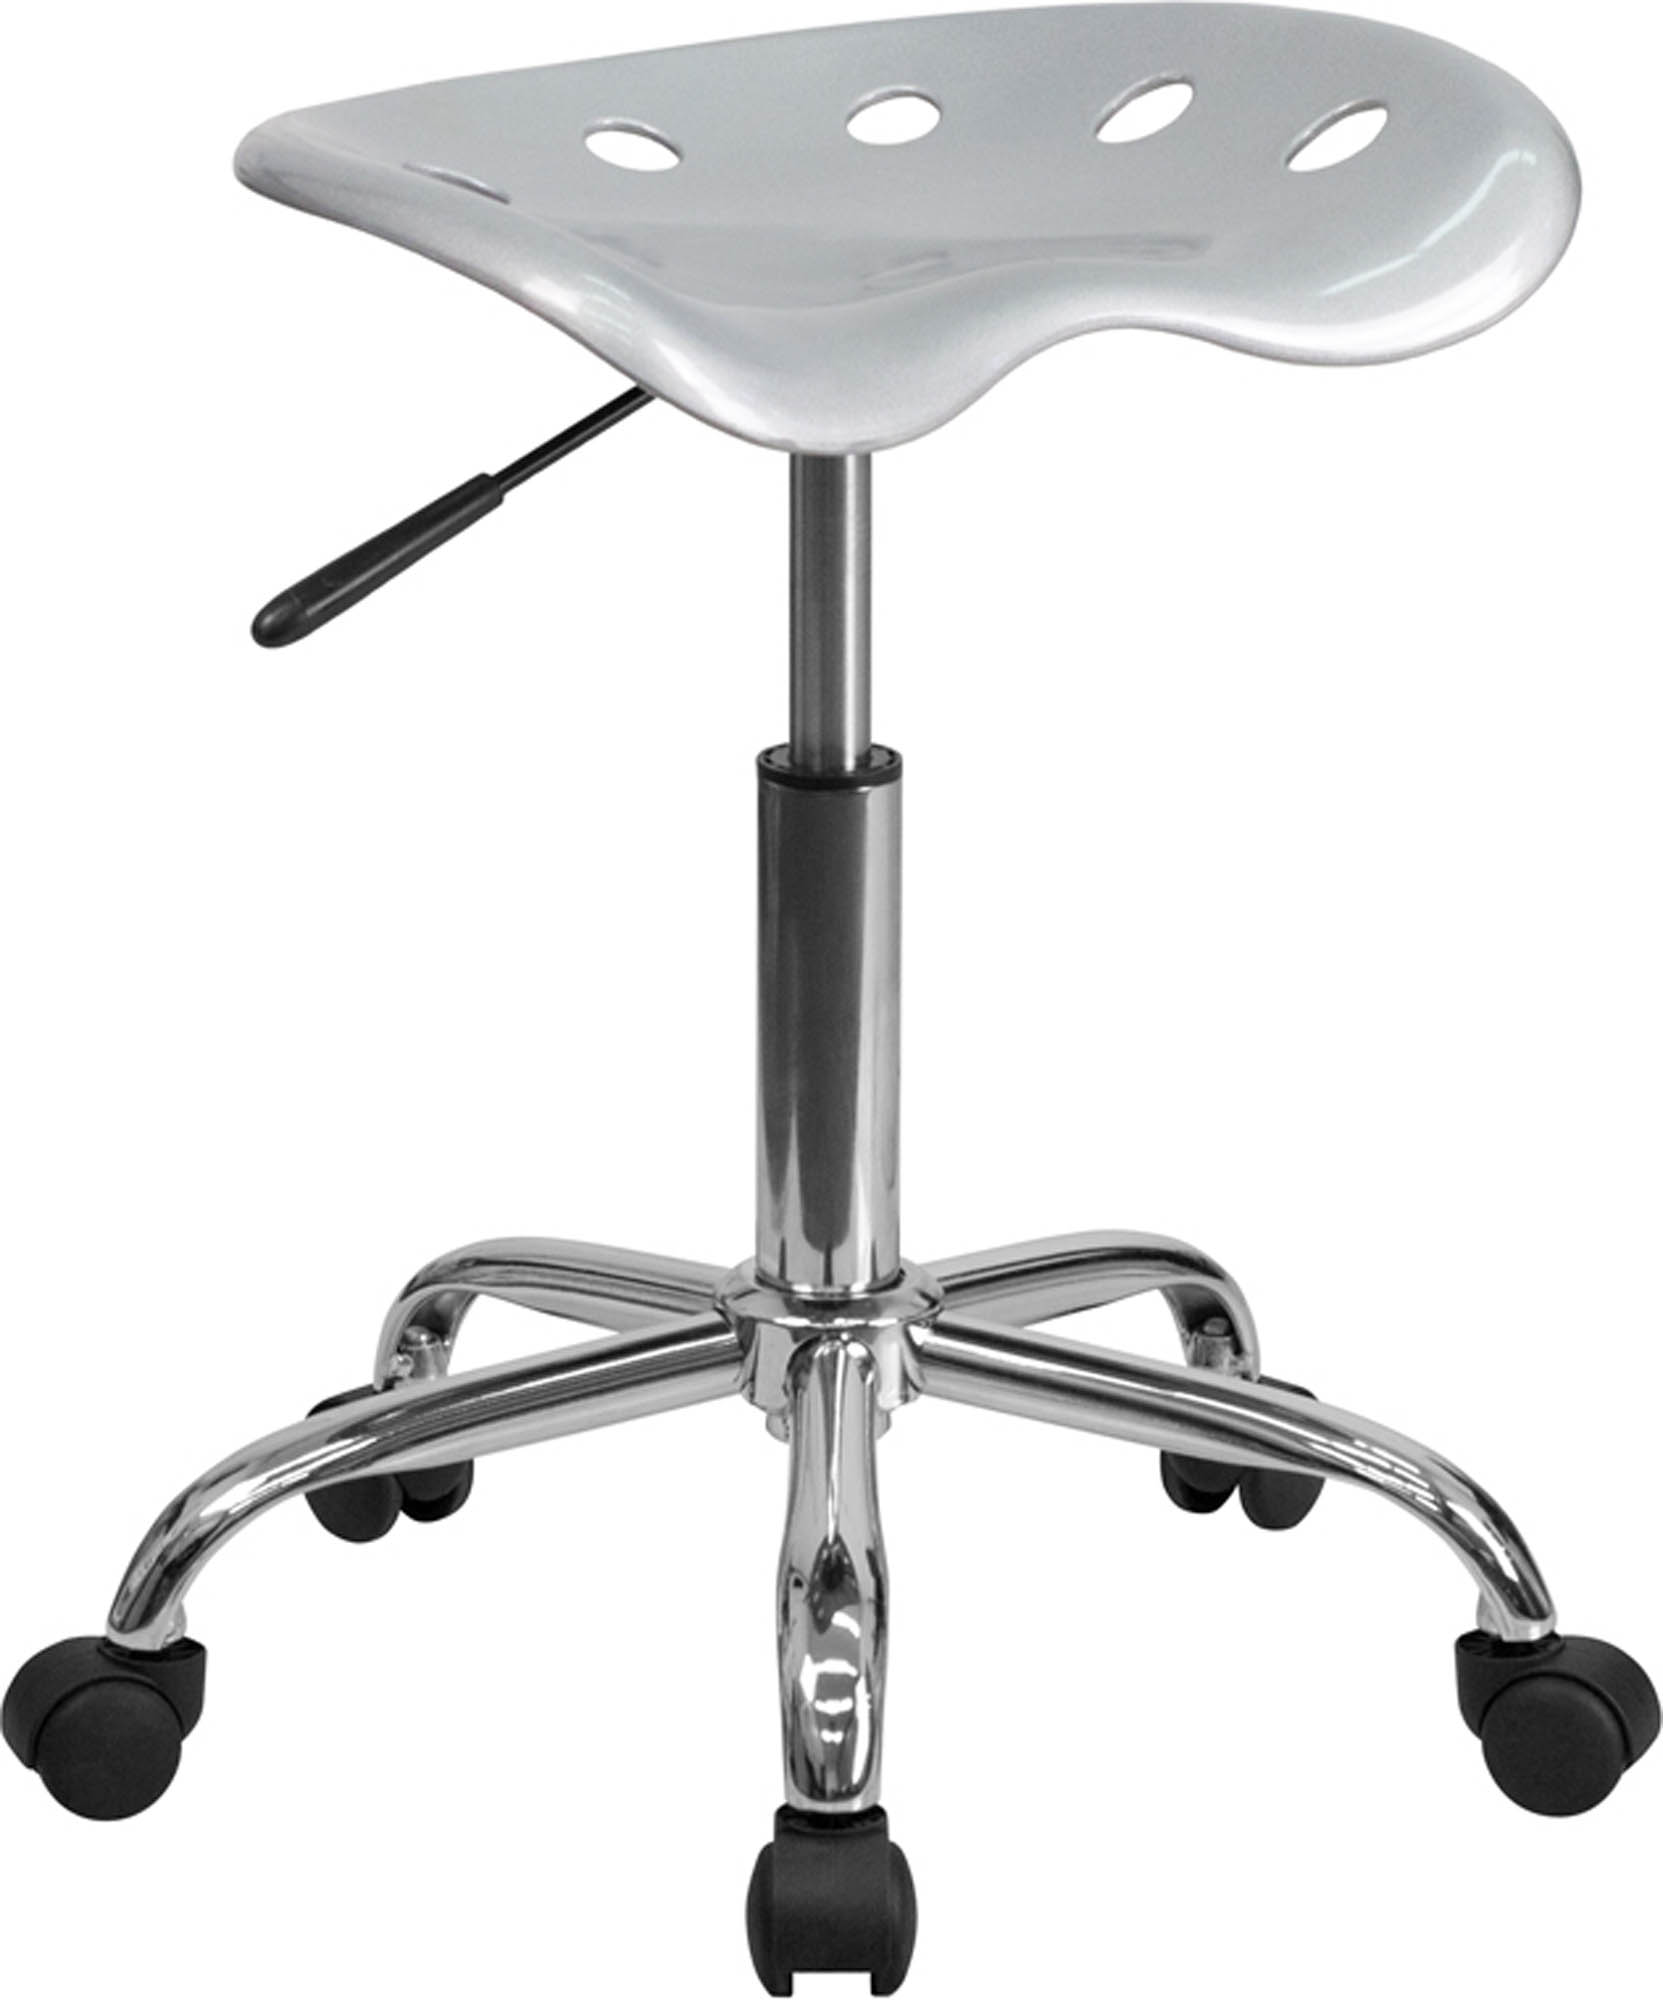 Offex LF-214A-SILVER-GG Vibrant Silver Tractor Seat and Chrome Stool